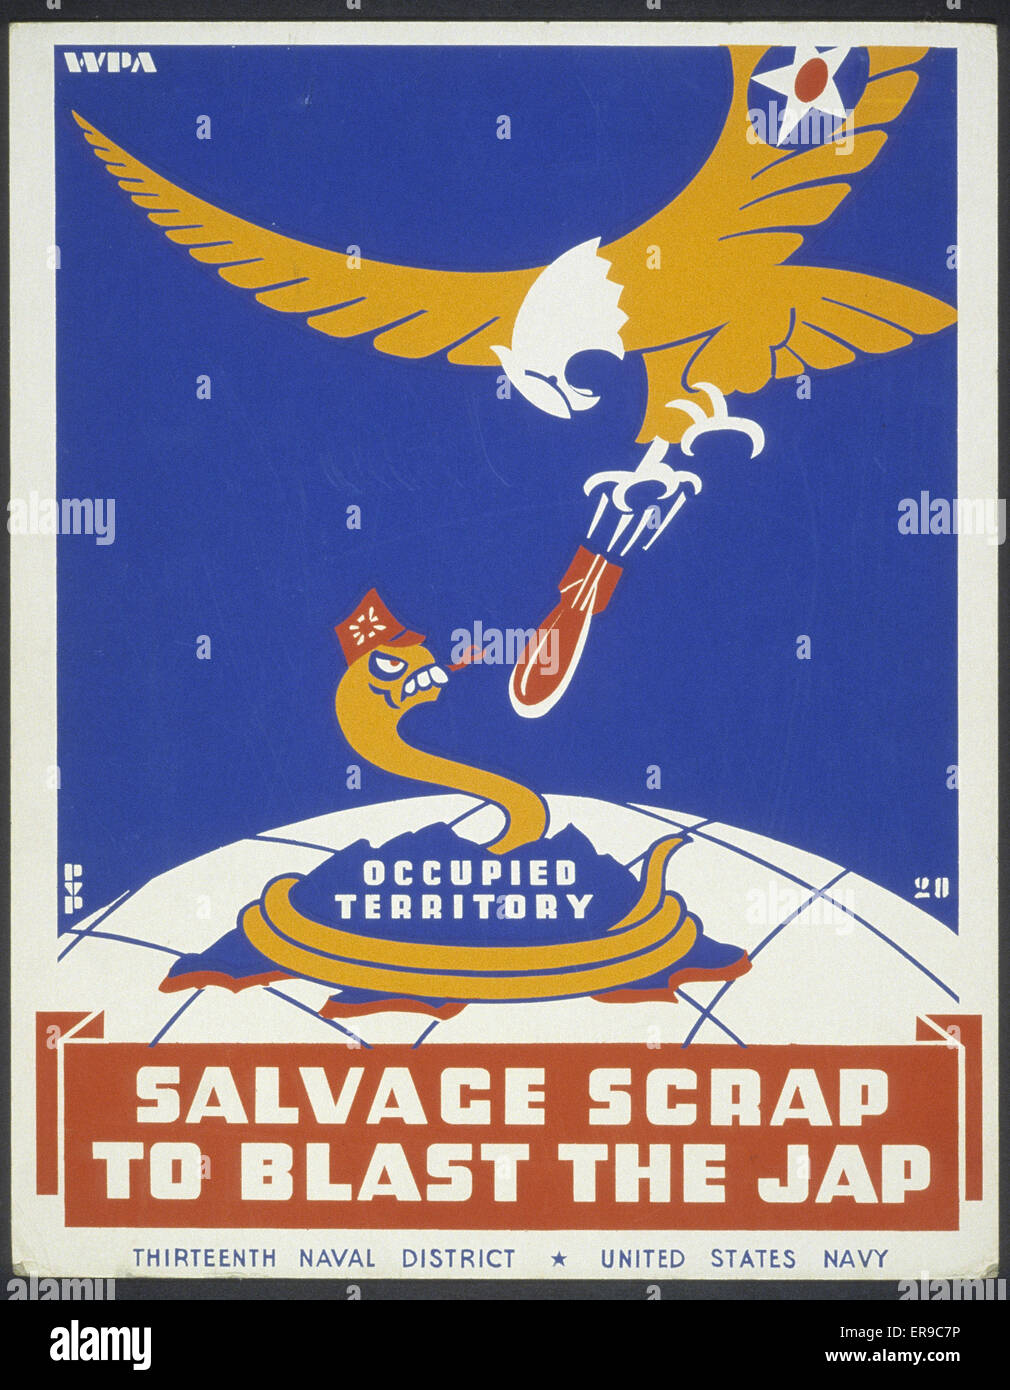 Salvage scrap to blast the jap. Poster for Thirteenth Naval District, United States Navy, showing a snake representing - Stock Image